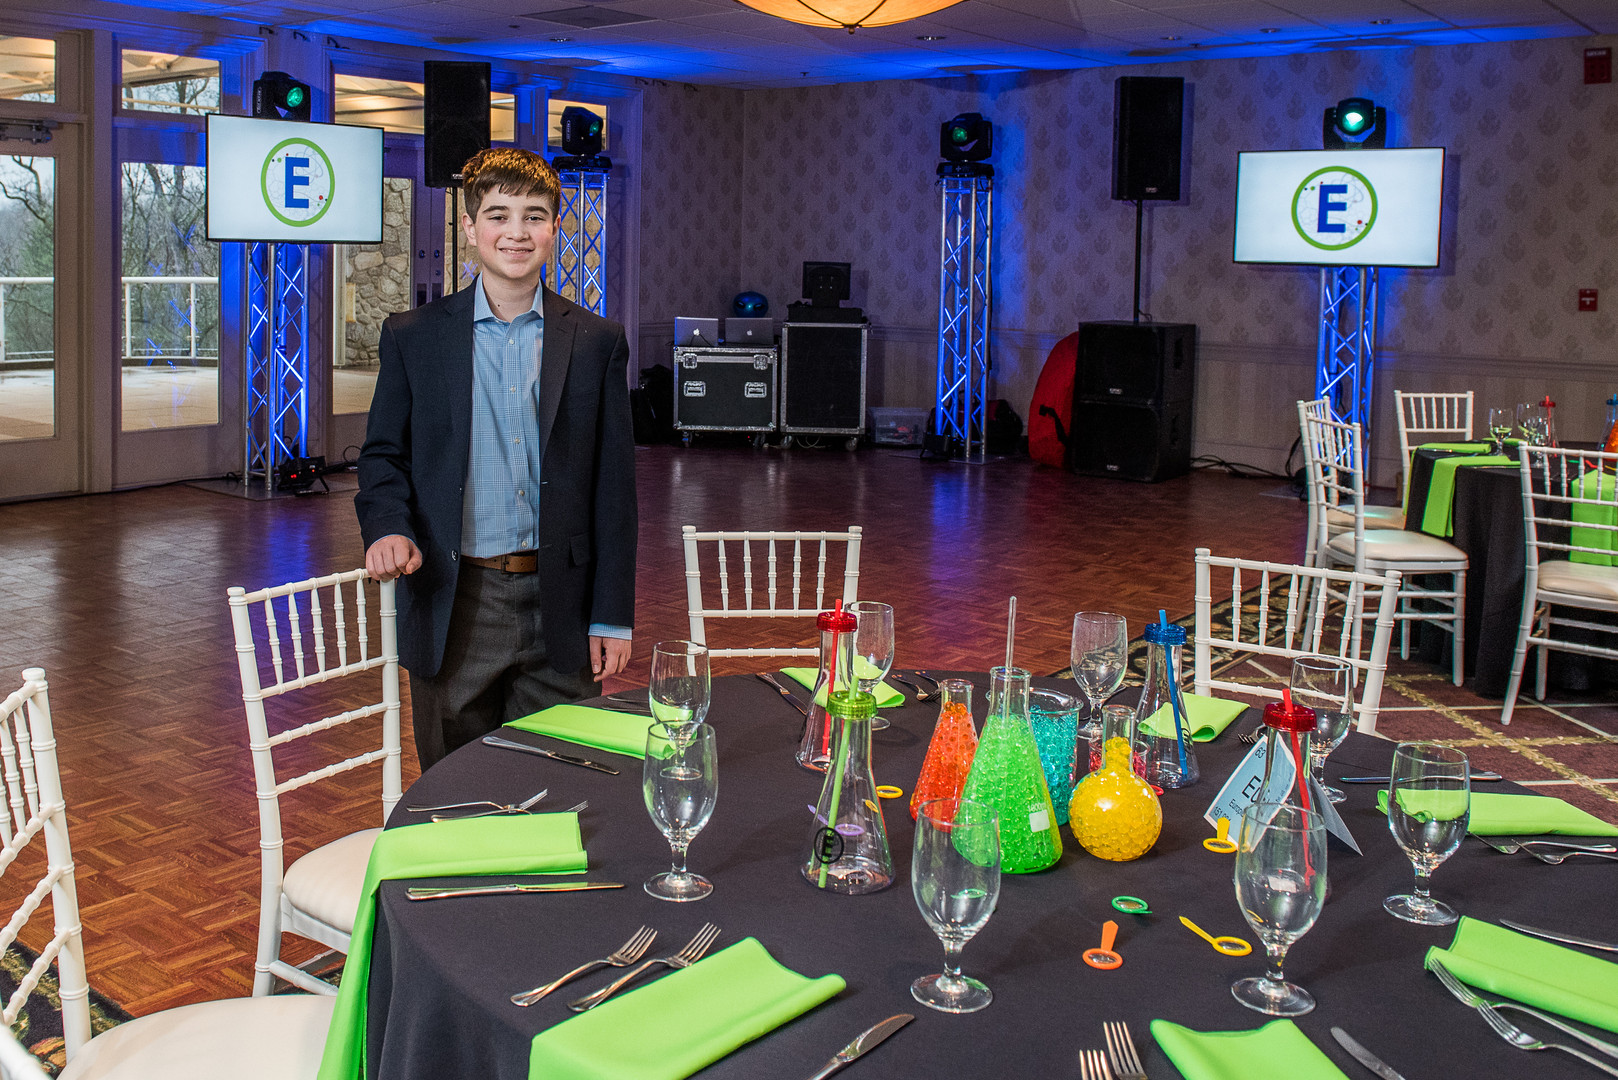 cleveland_mitzvah party-100.jpg